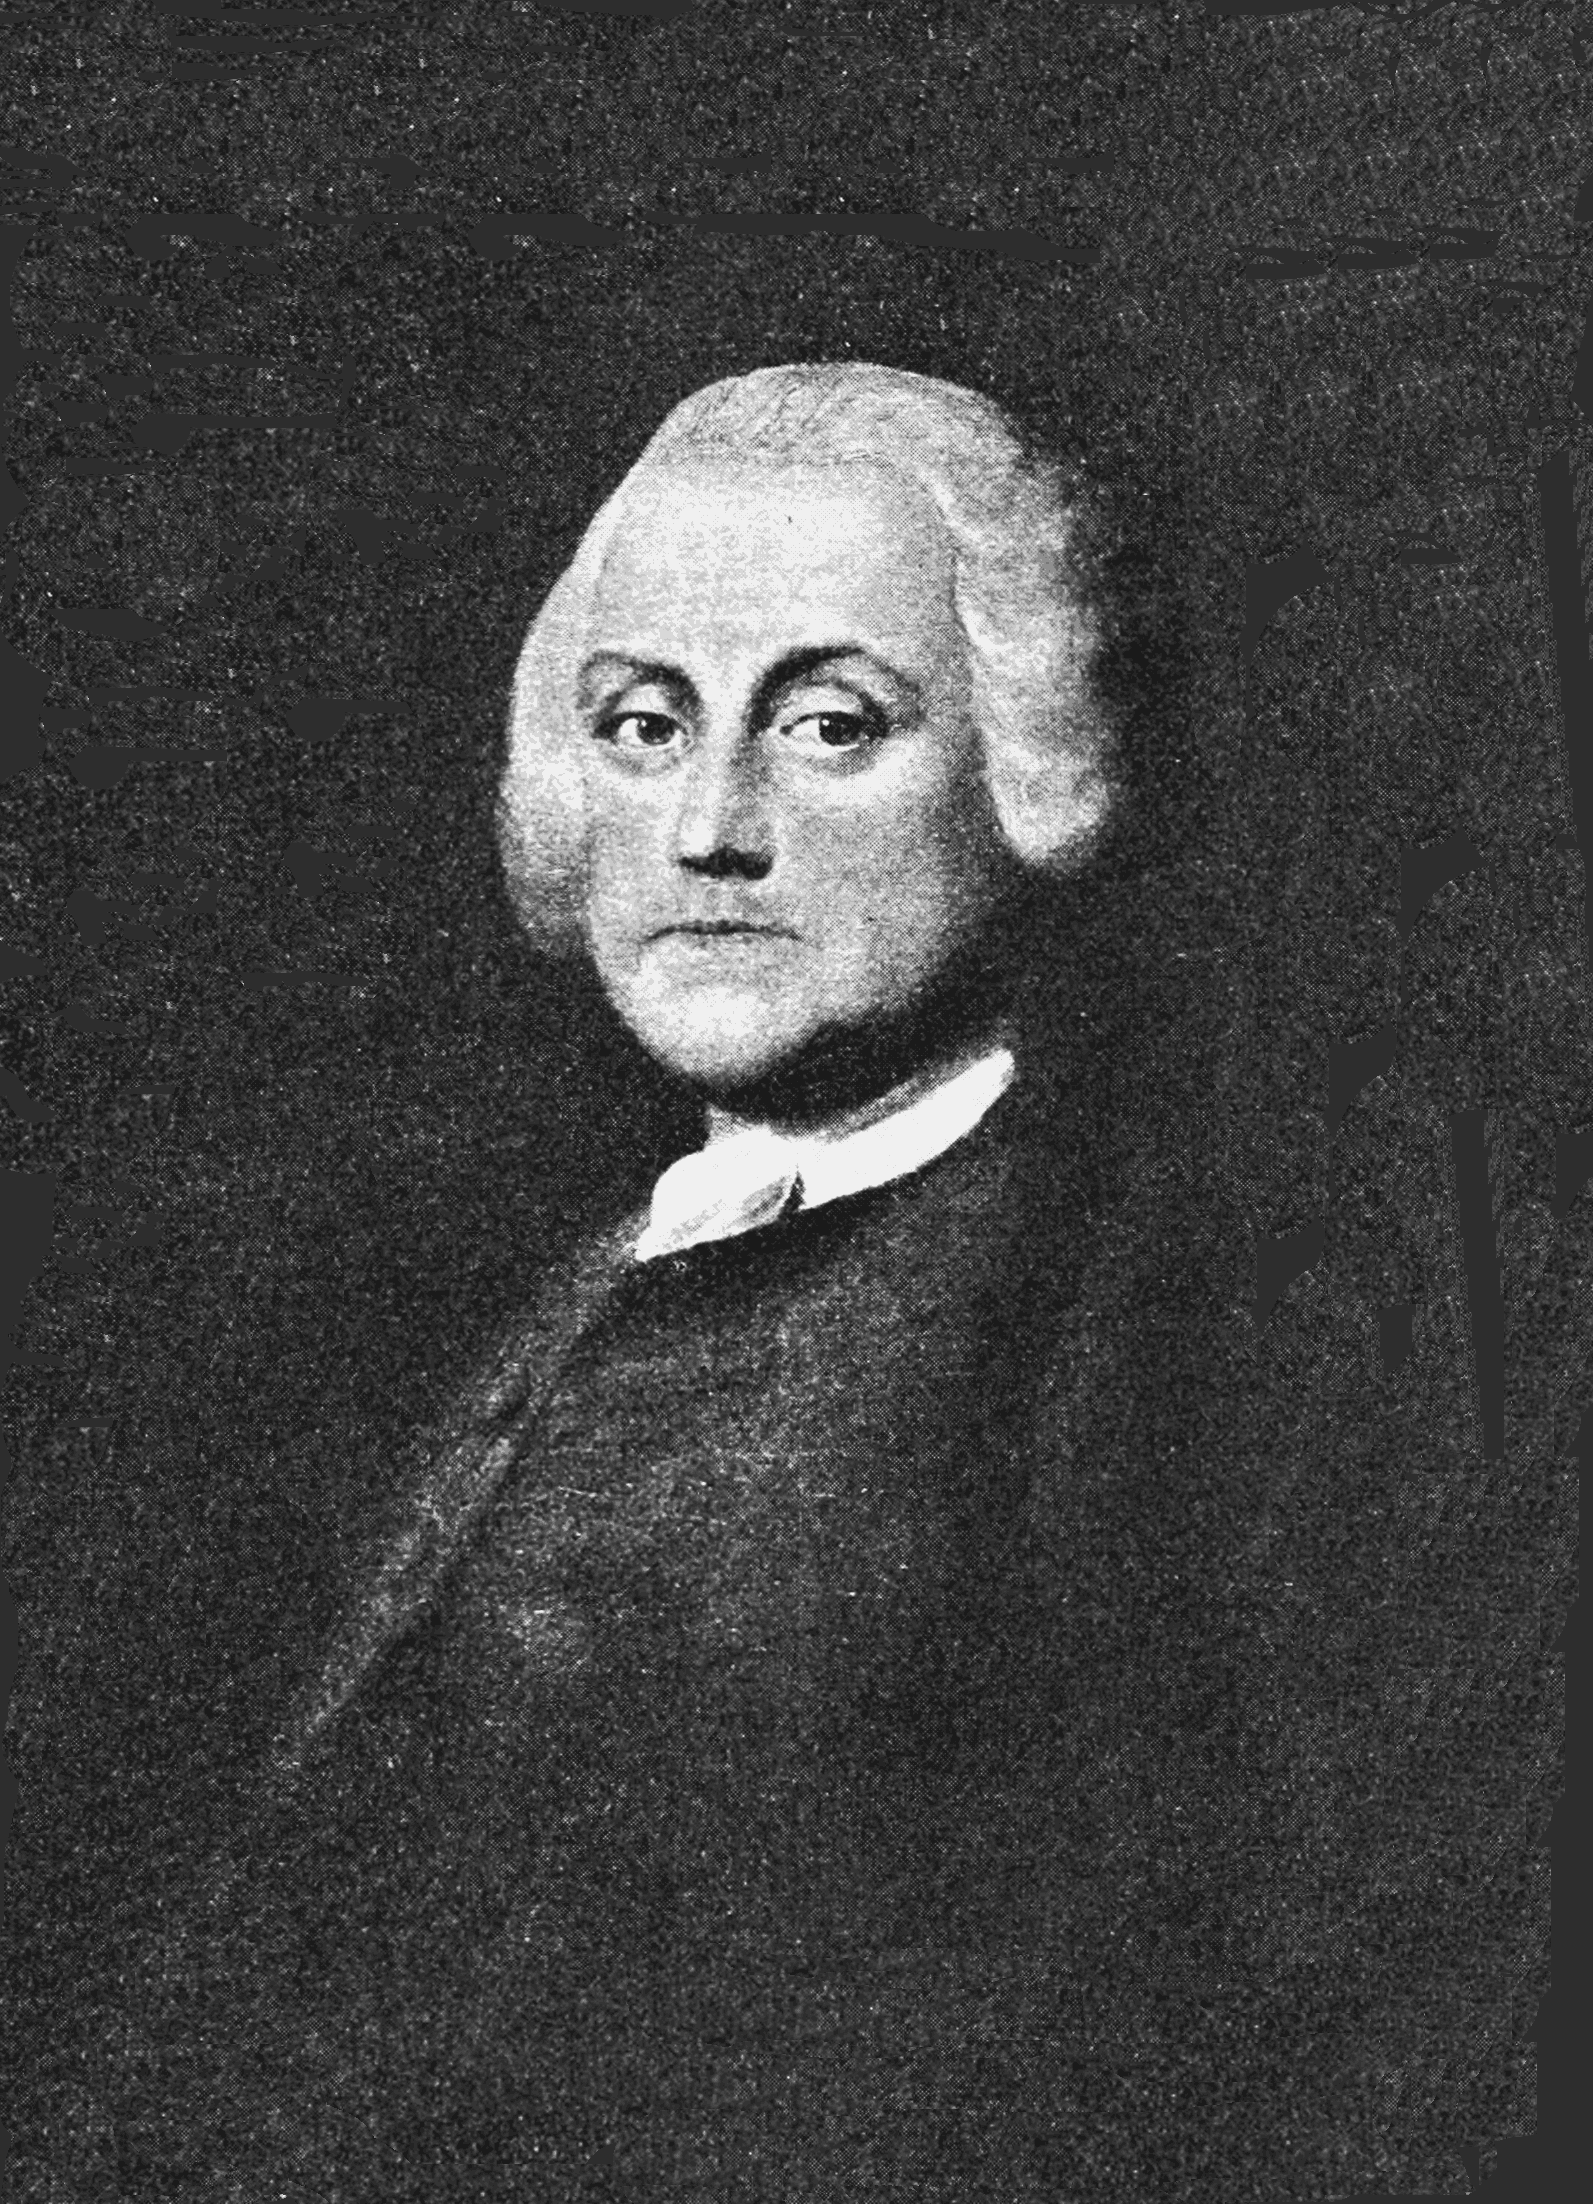 PSM V71 D099 Portrait of franklin painted by benjamin wilson in 1759.png